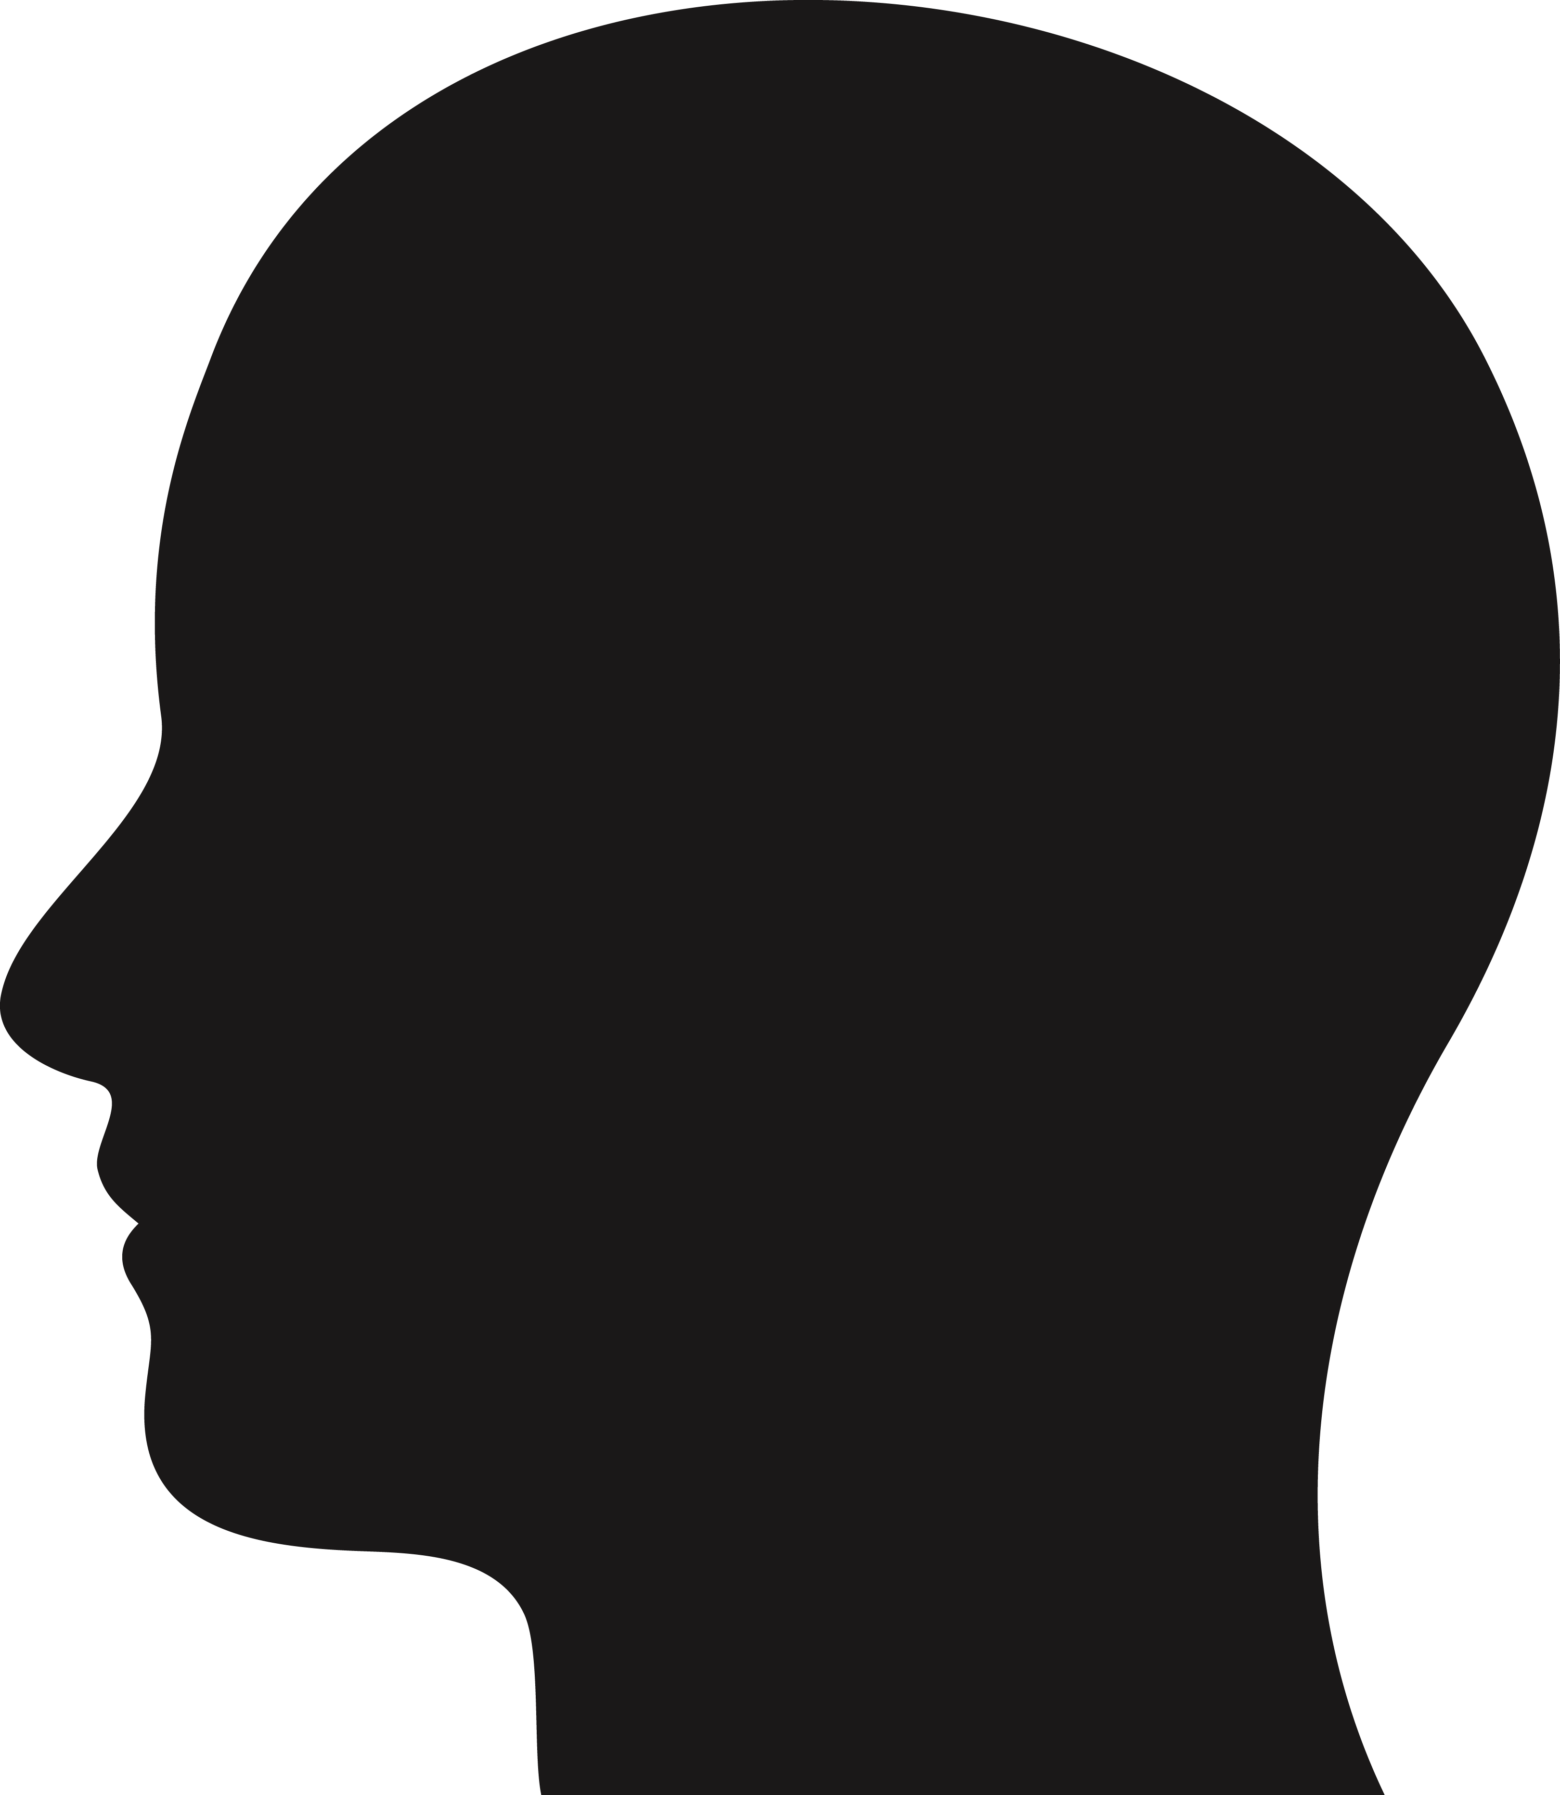 Head Png (102+ images in Collection) Page 3.